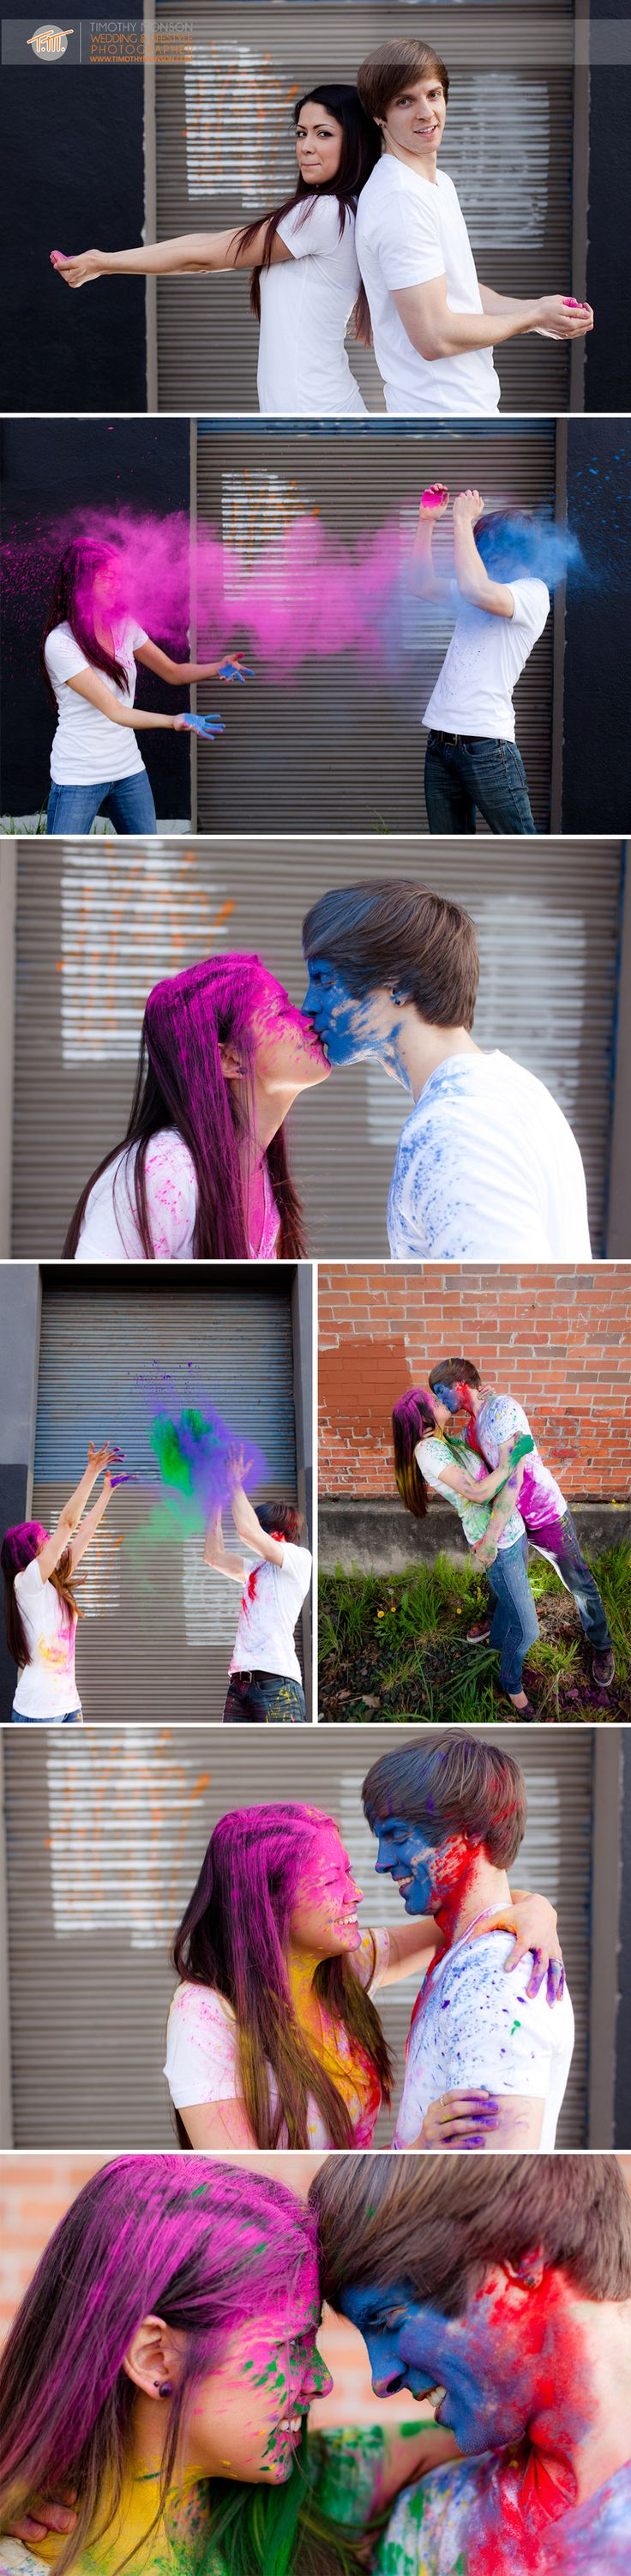 I kinda of really want to do this shoot withsomeone  A Colorful and Creative Engagement Session Using Bright Chalk Dust | Eugene, Or